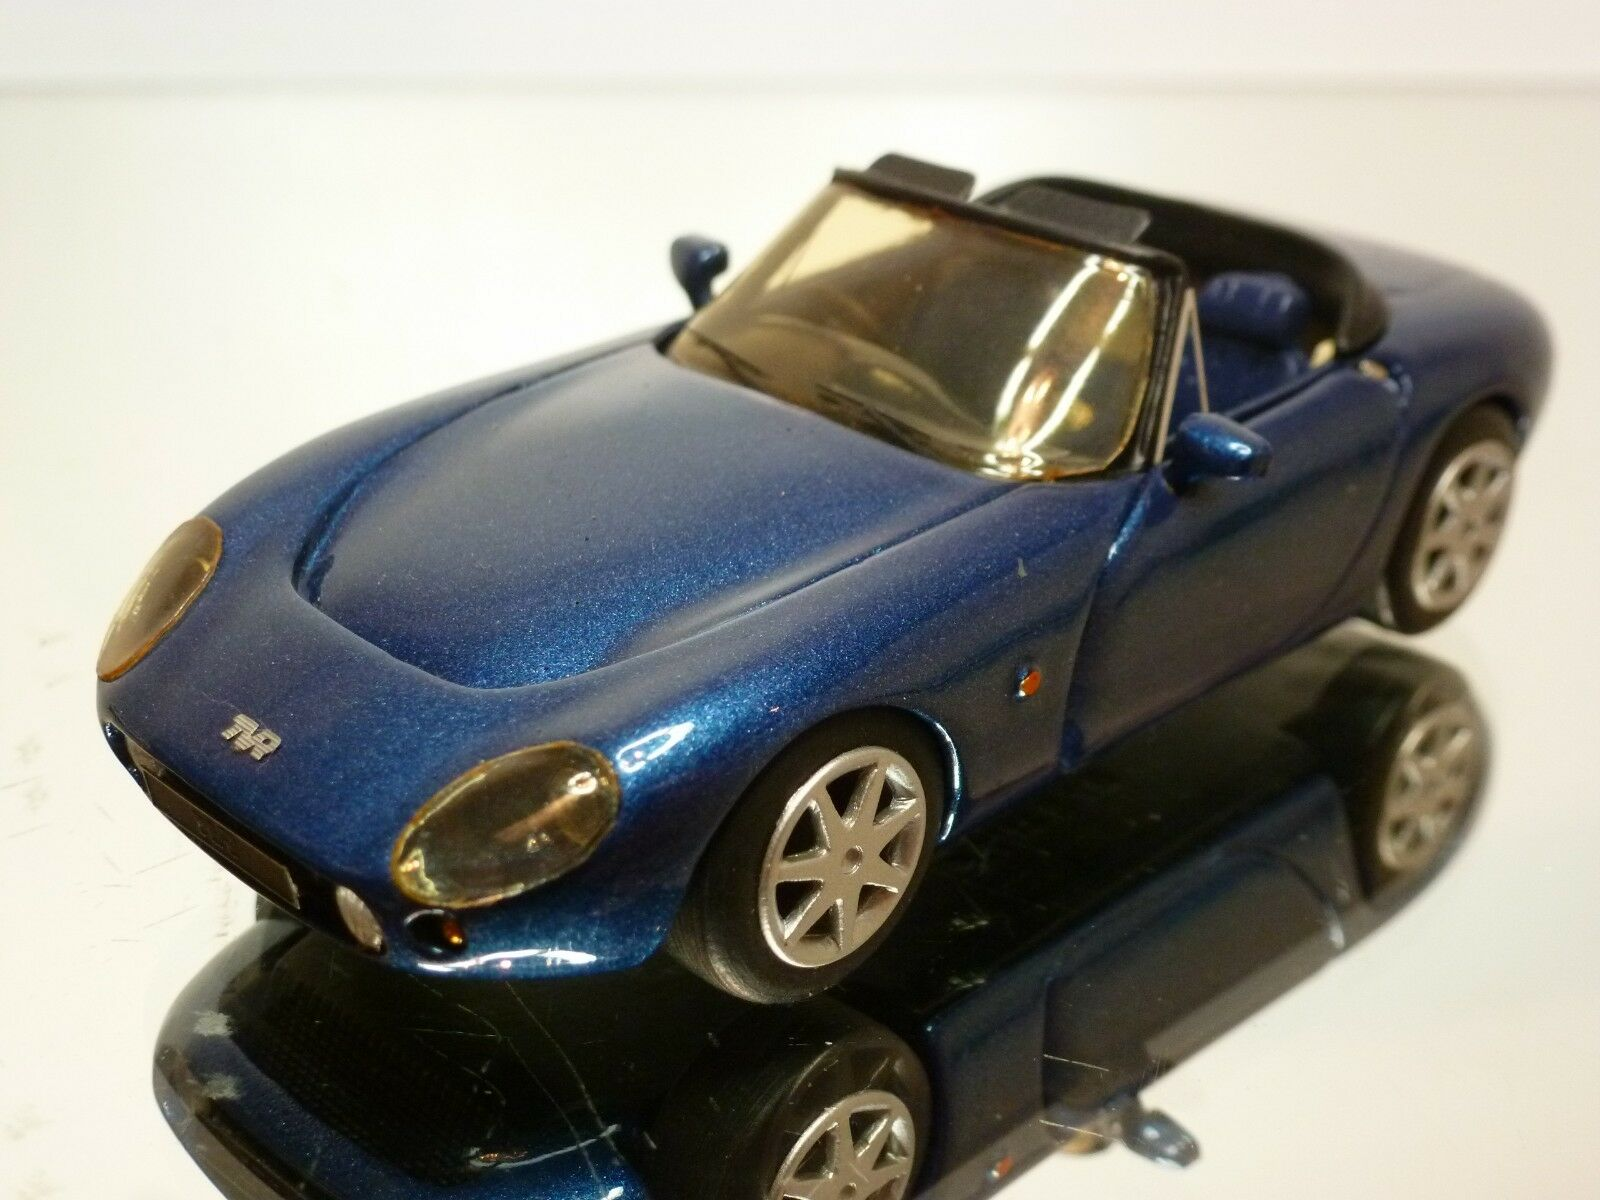 SMTS CL55 TVR GRIFFITH - Azul METALLIC 143 RARE - EXCELLENT CONDITION -12/14